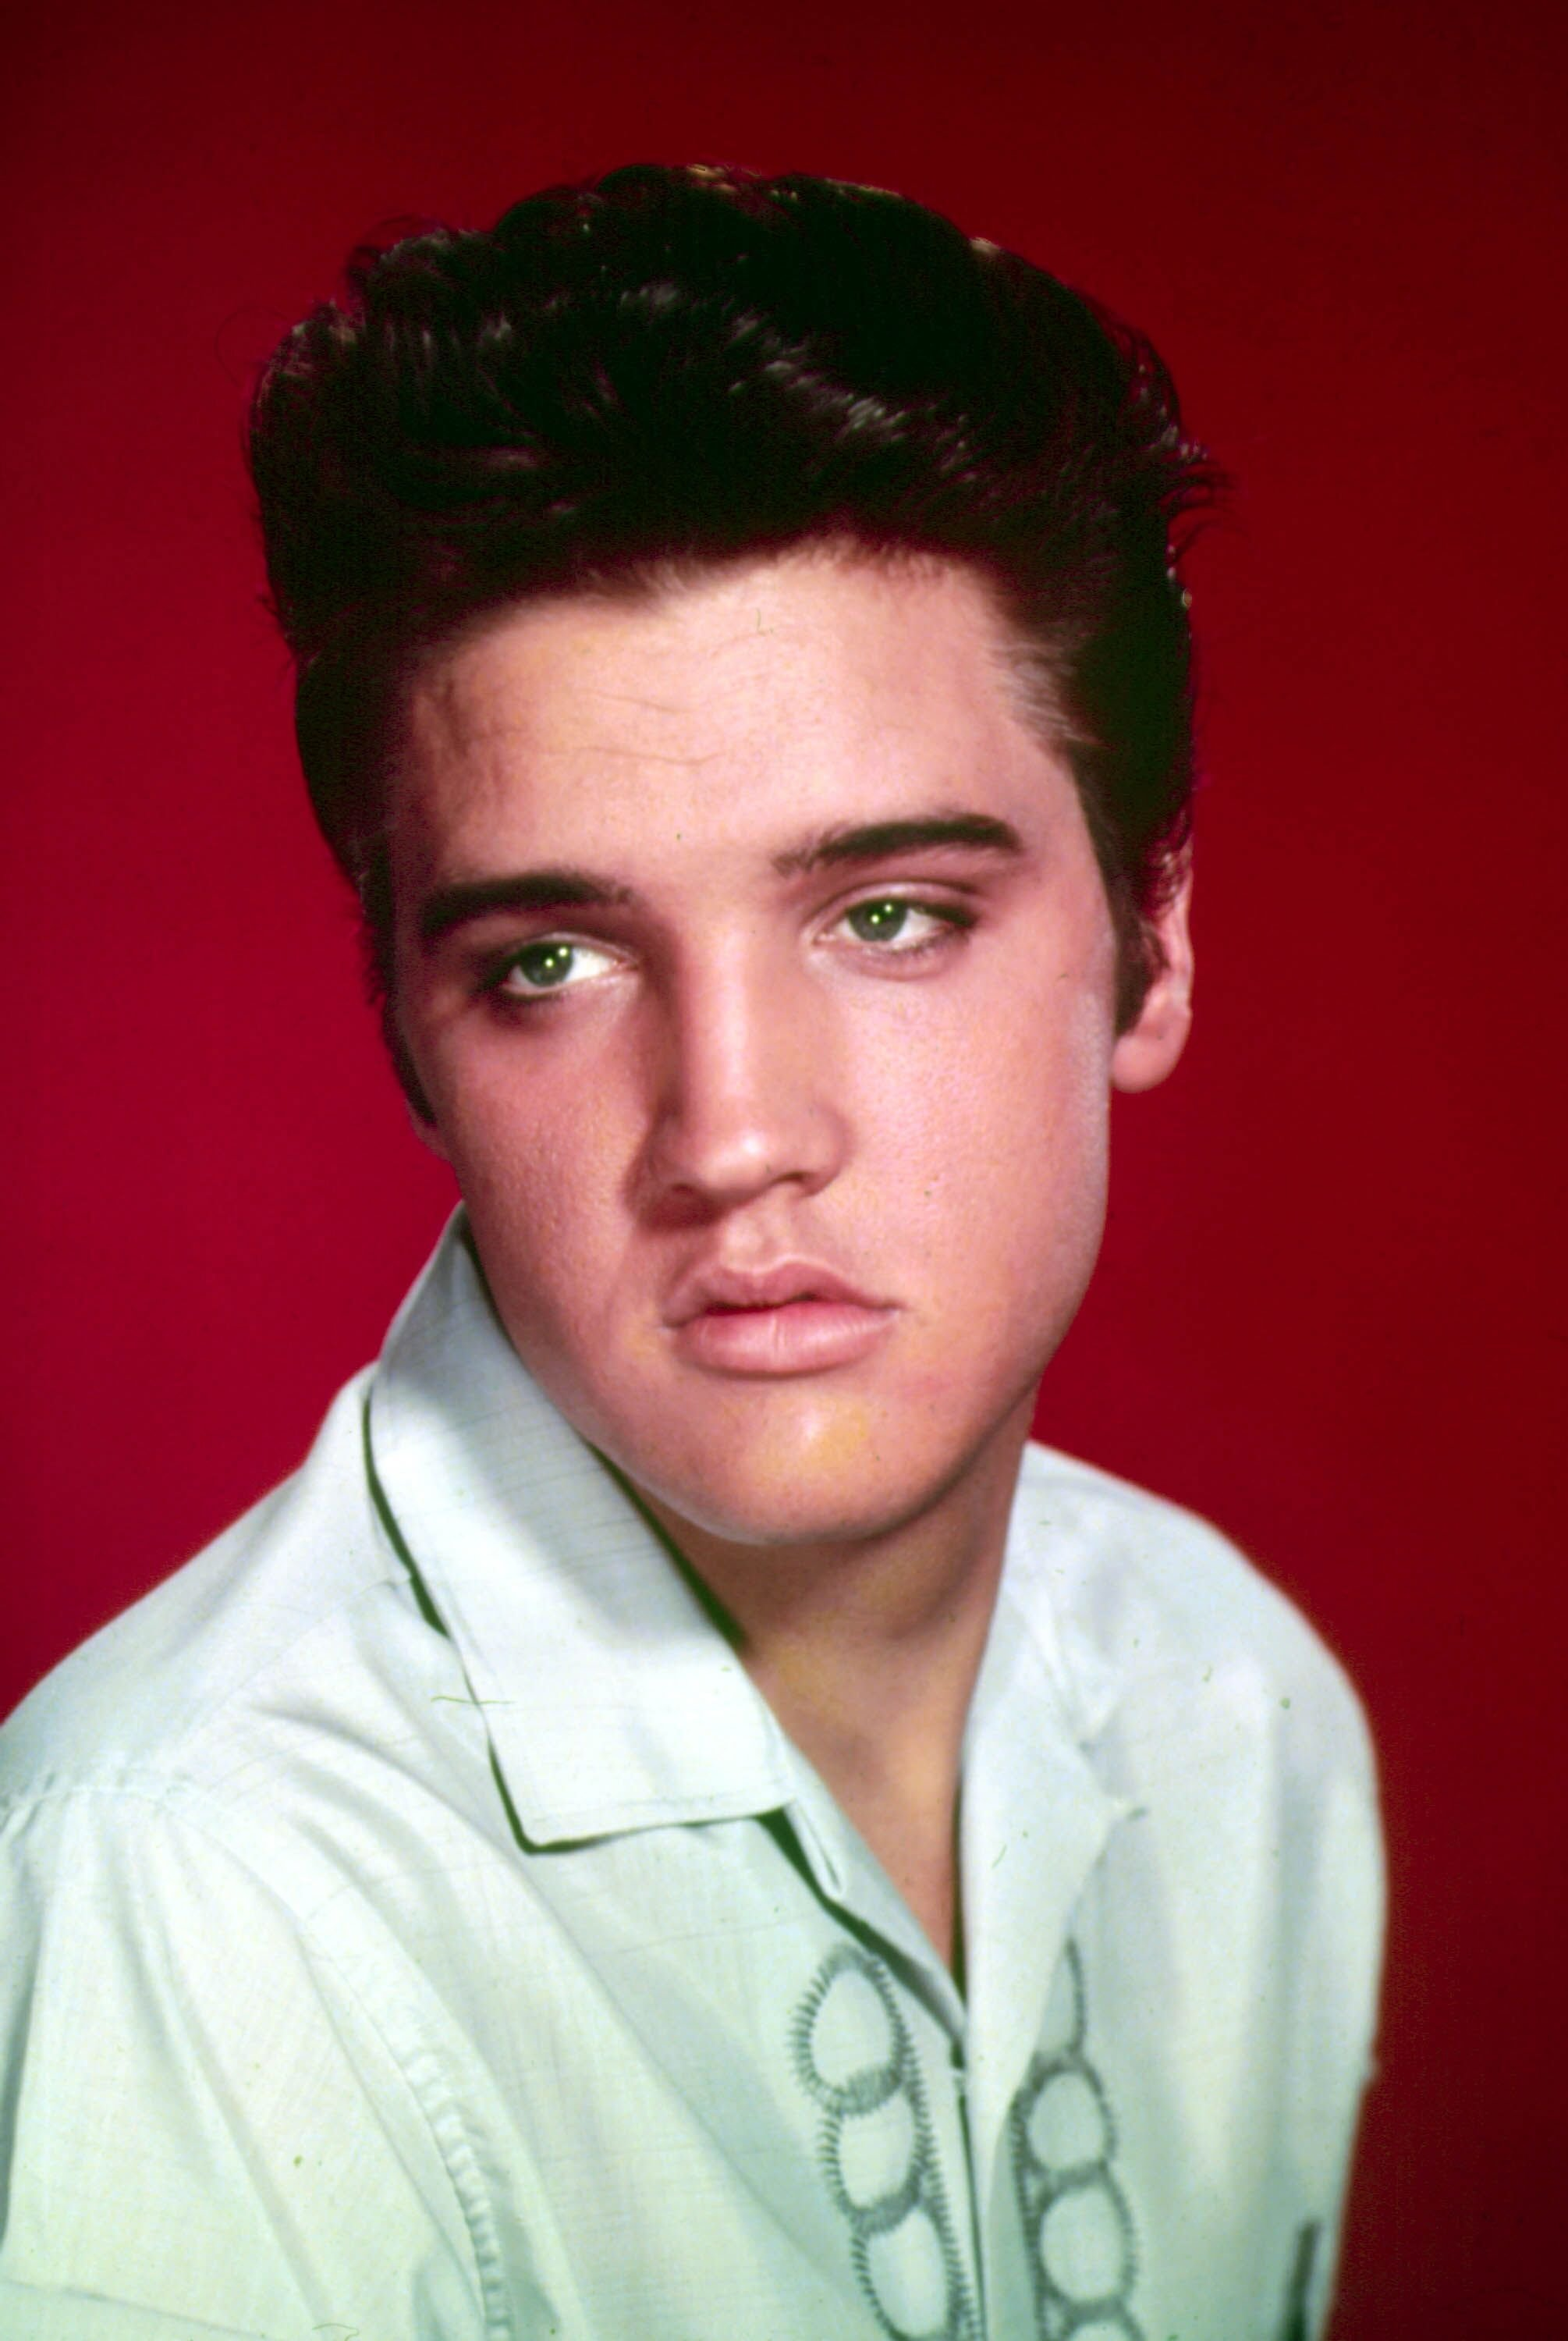 Singer Elvis Presley poses for a studio portrait circa 1964 | Source: Getty Images